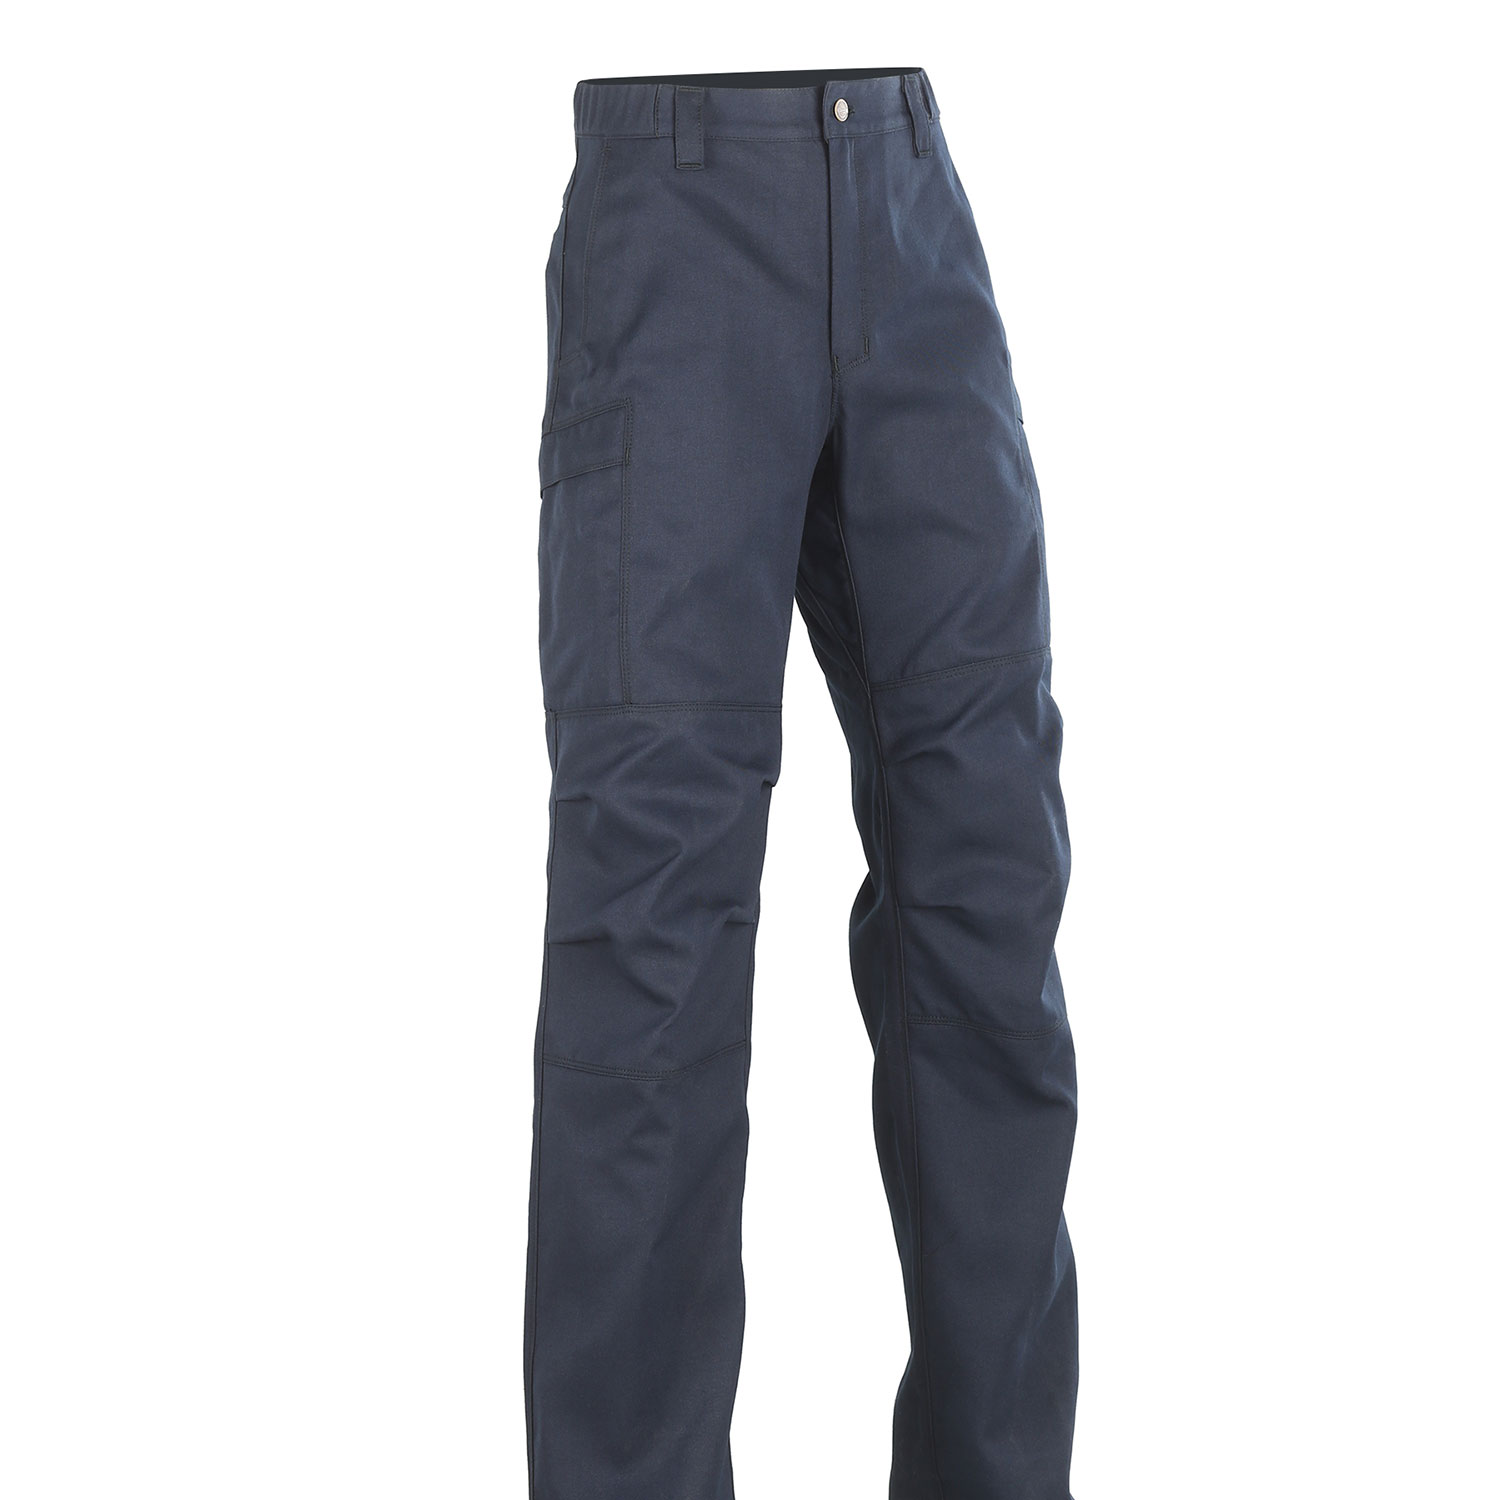 Flying Cross Women's Nomex Vertx Style Cargo Pants